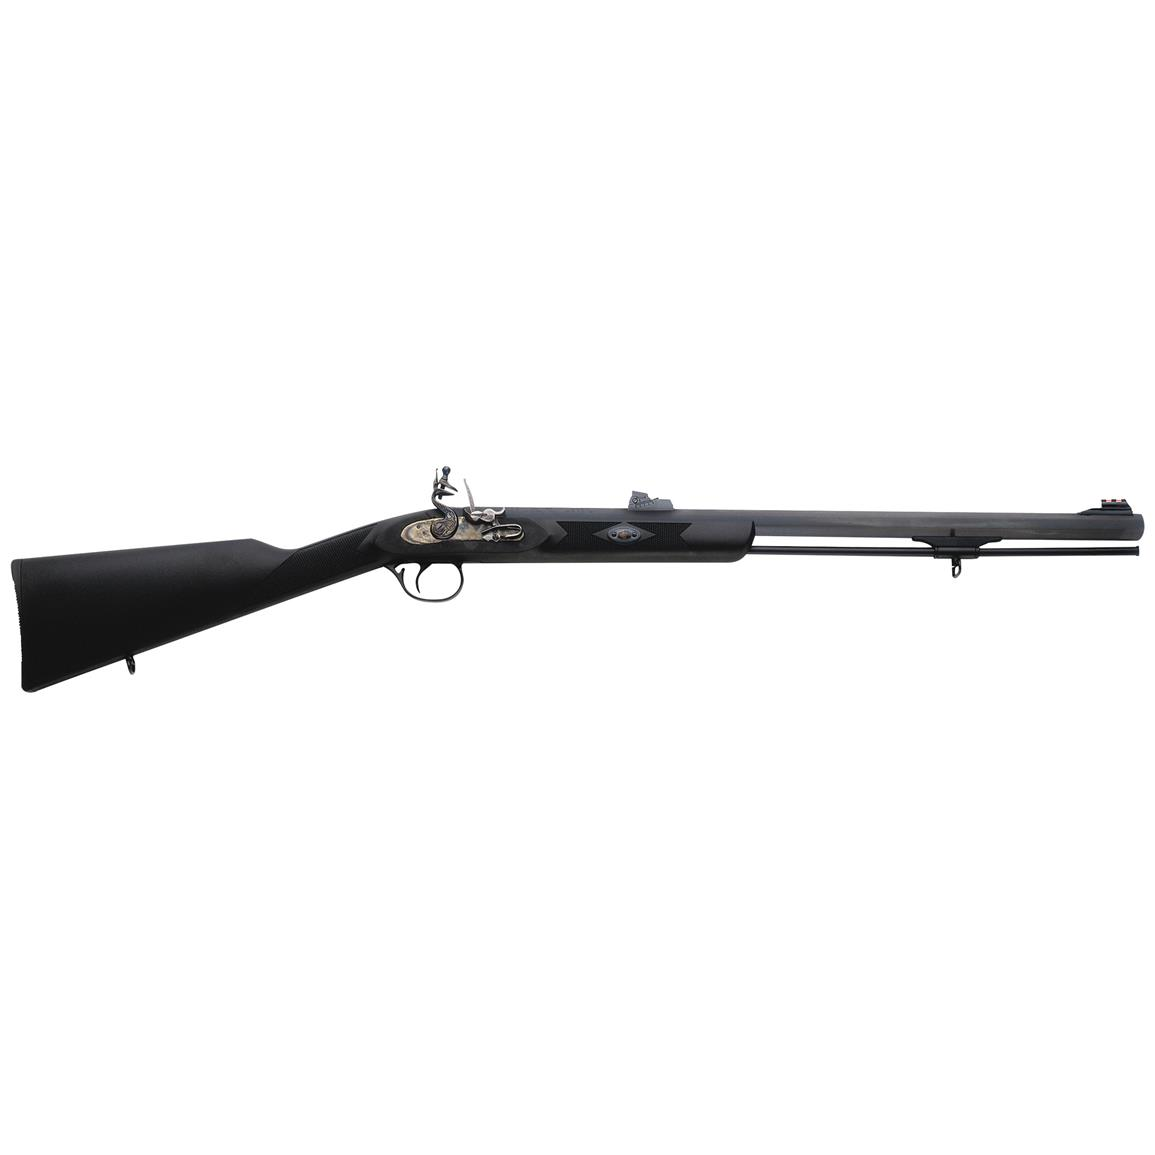 Traditions™ Deerhunter™ .50 Cal. Black Powder Flintlock Rifle